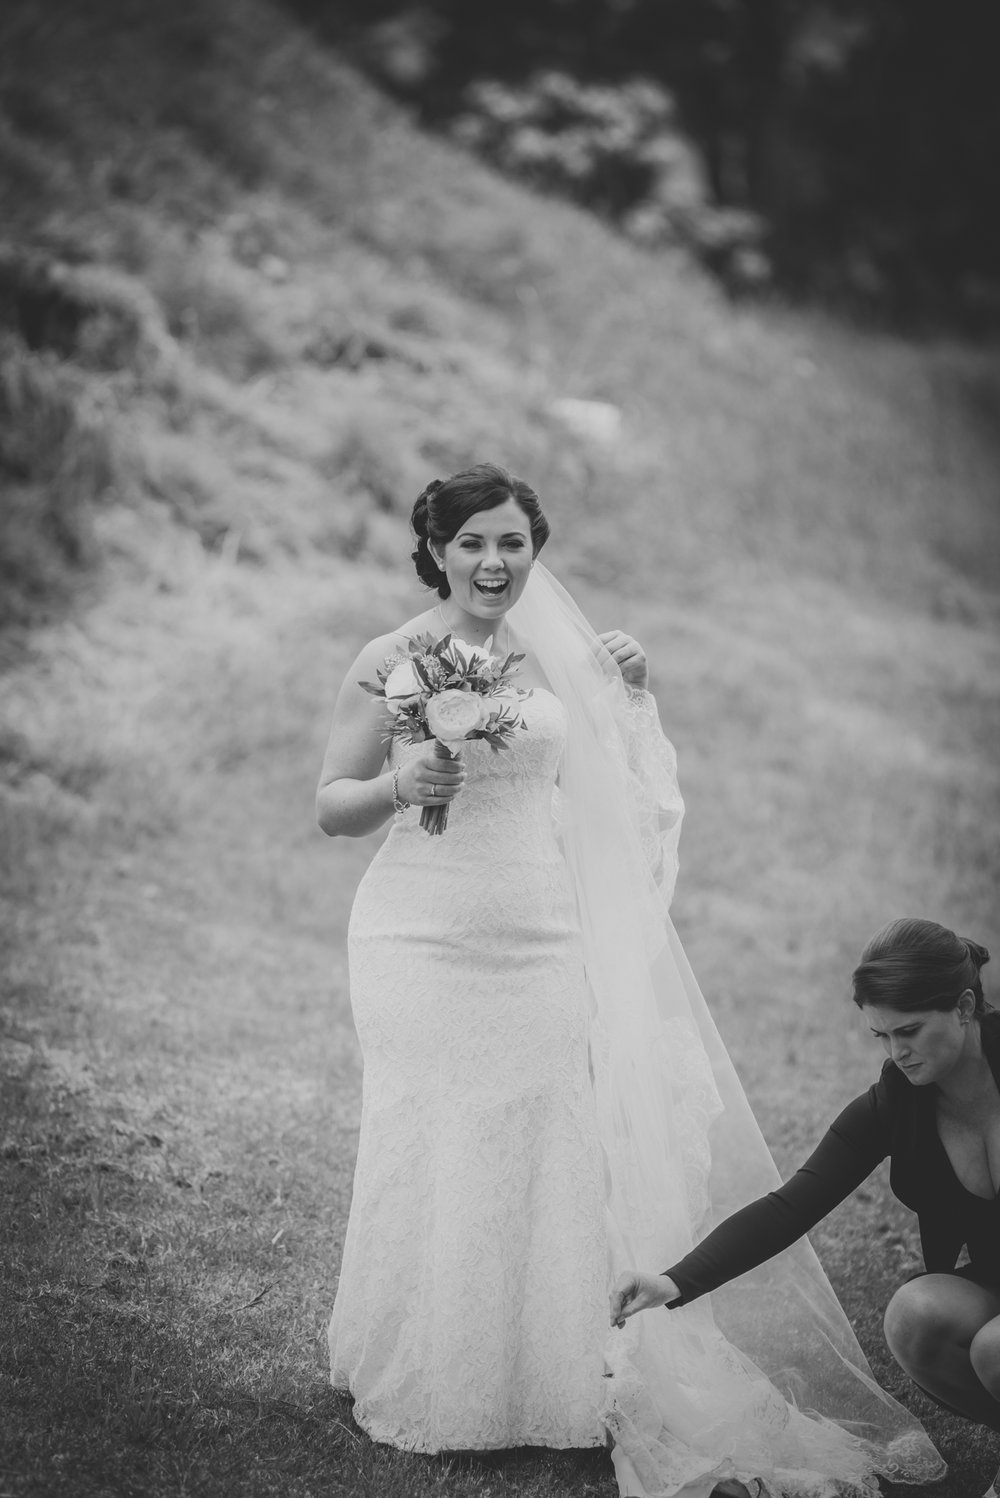 grace-carl-dargaville-wedding-modern-elegant-20